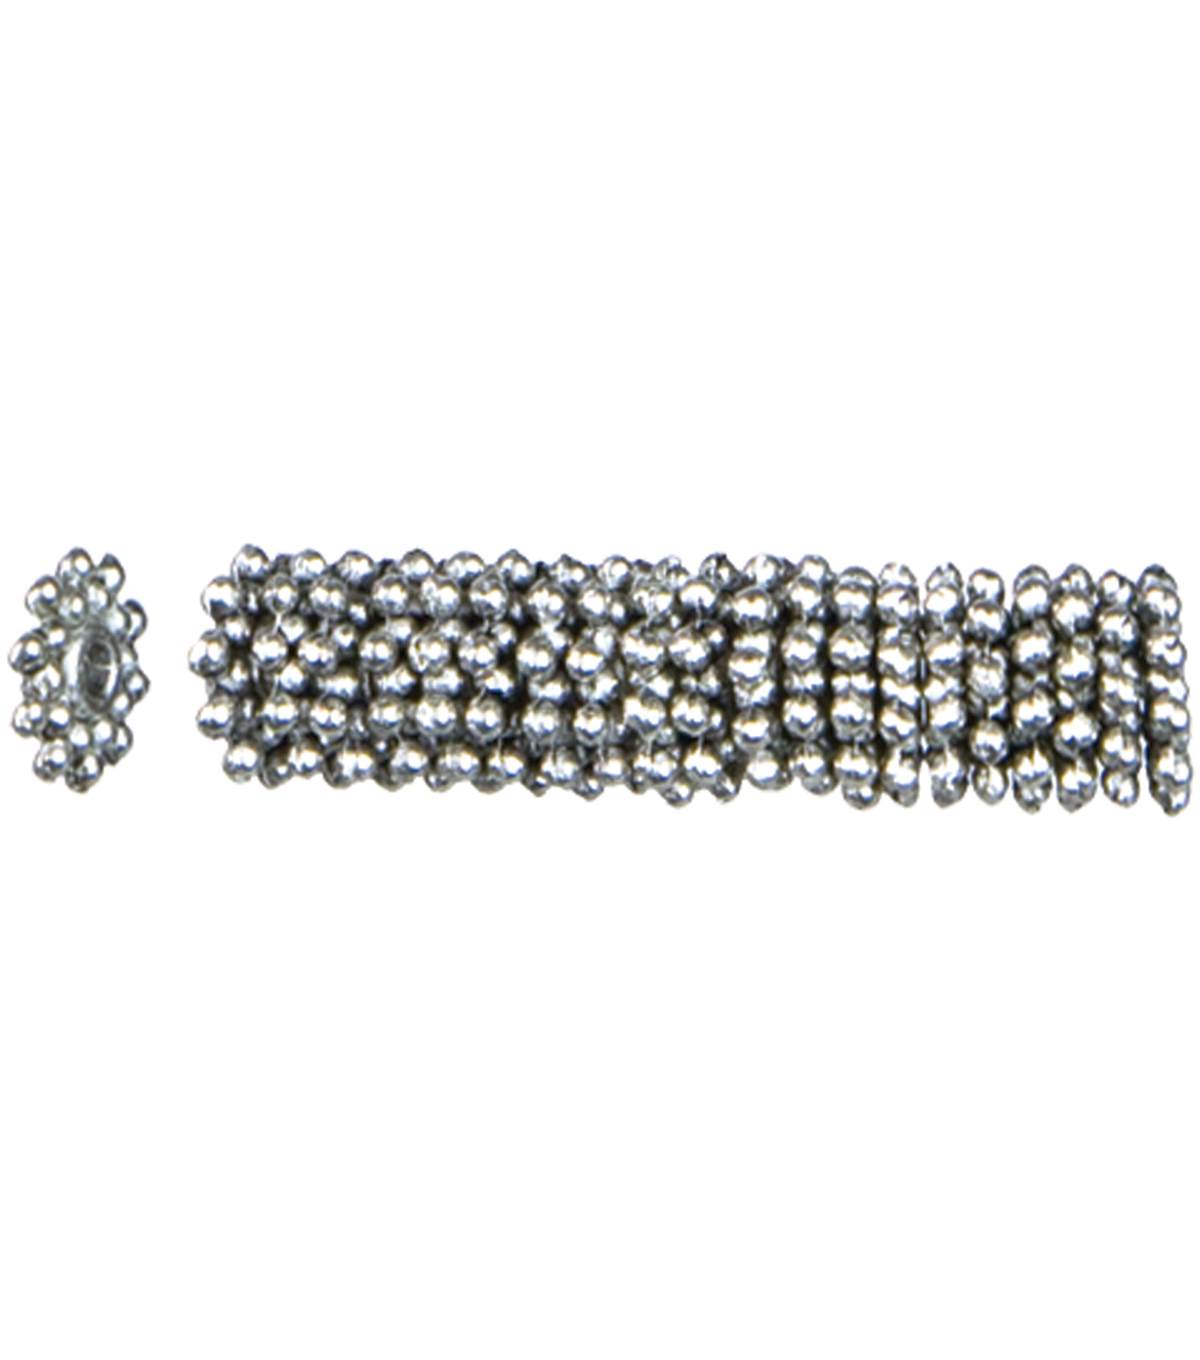 Jewelry Basics Metal Beads 8mm 45/Pk-Silver Knob Wheel Spacer